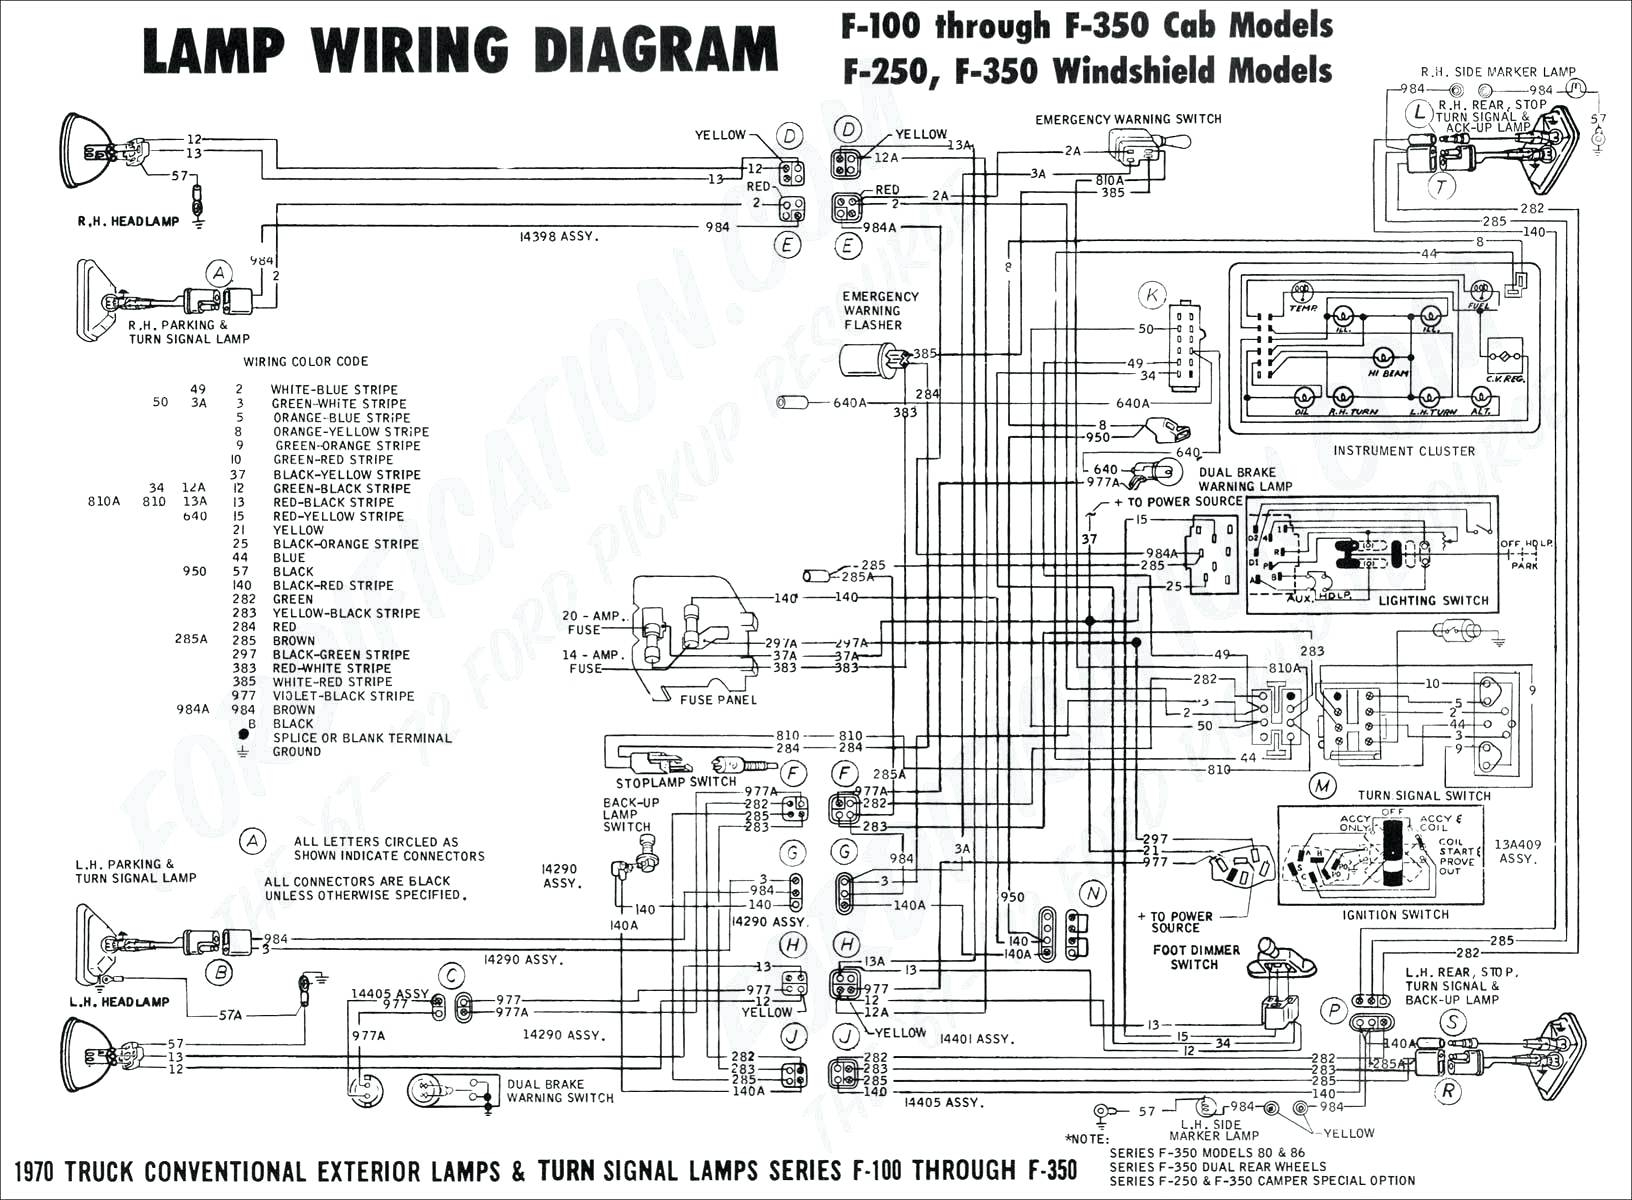 Diagram 2001 Dodge Ram Engine Wire Diagram Full Version Hd Quality Wire Diagram Pvdiagramxmckie Edizionisavine It